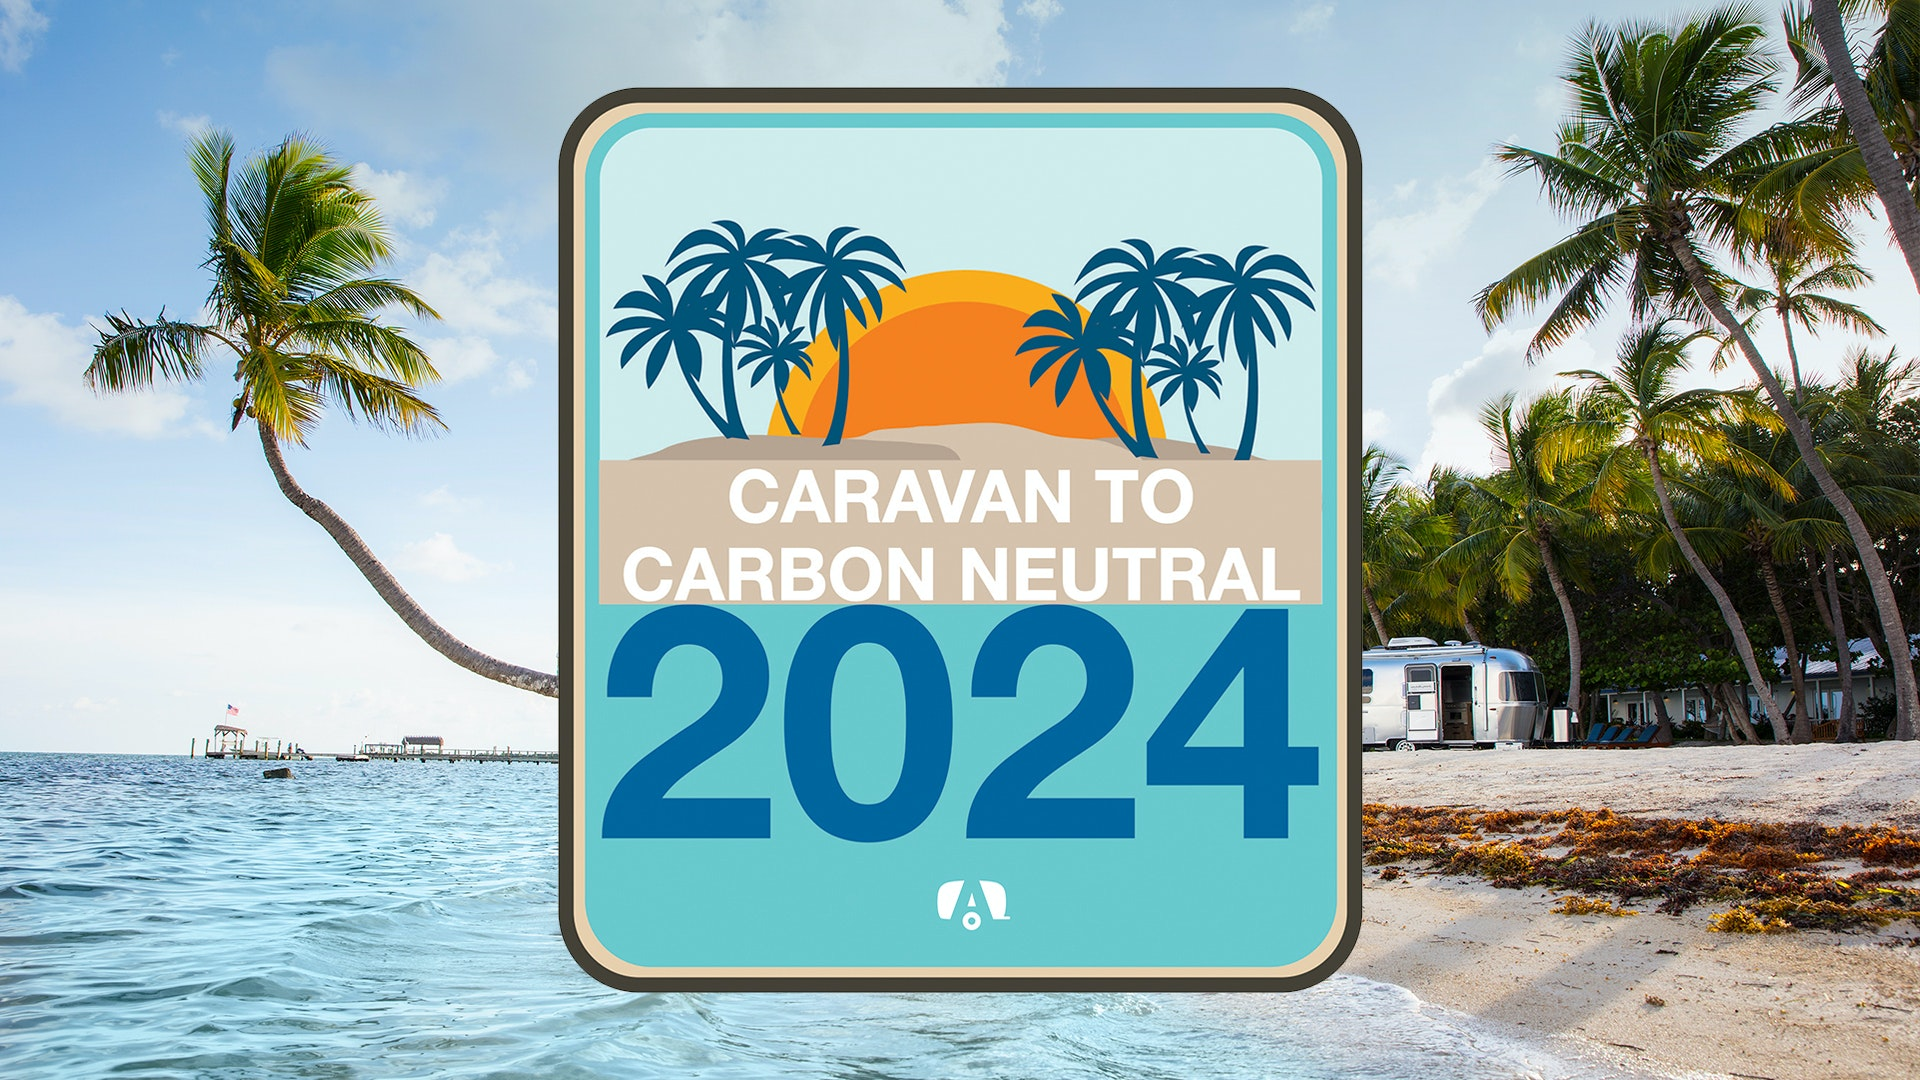 Caravan-to-Carbon-Neutral-2024